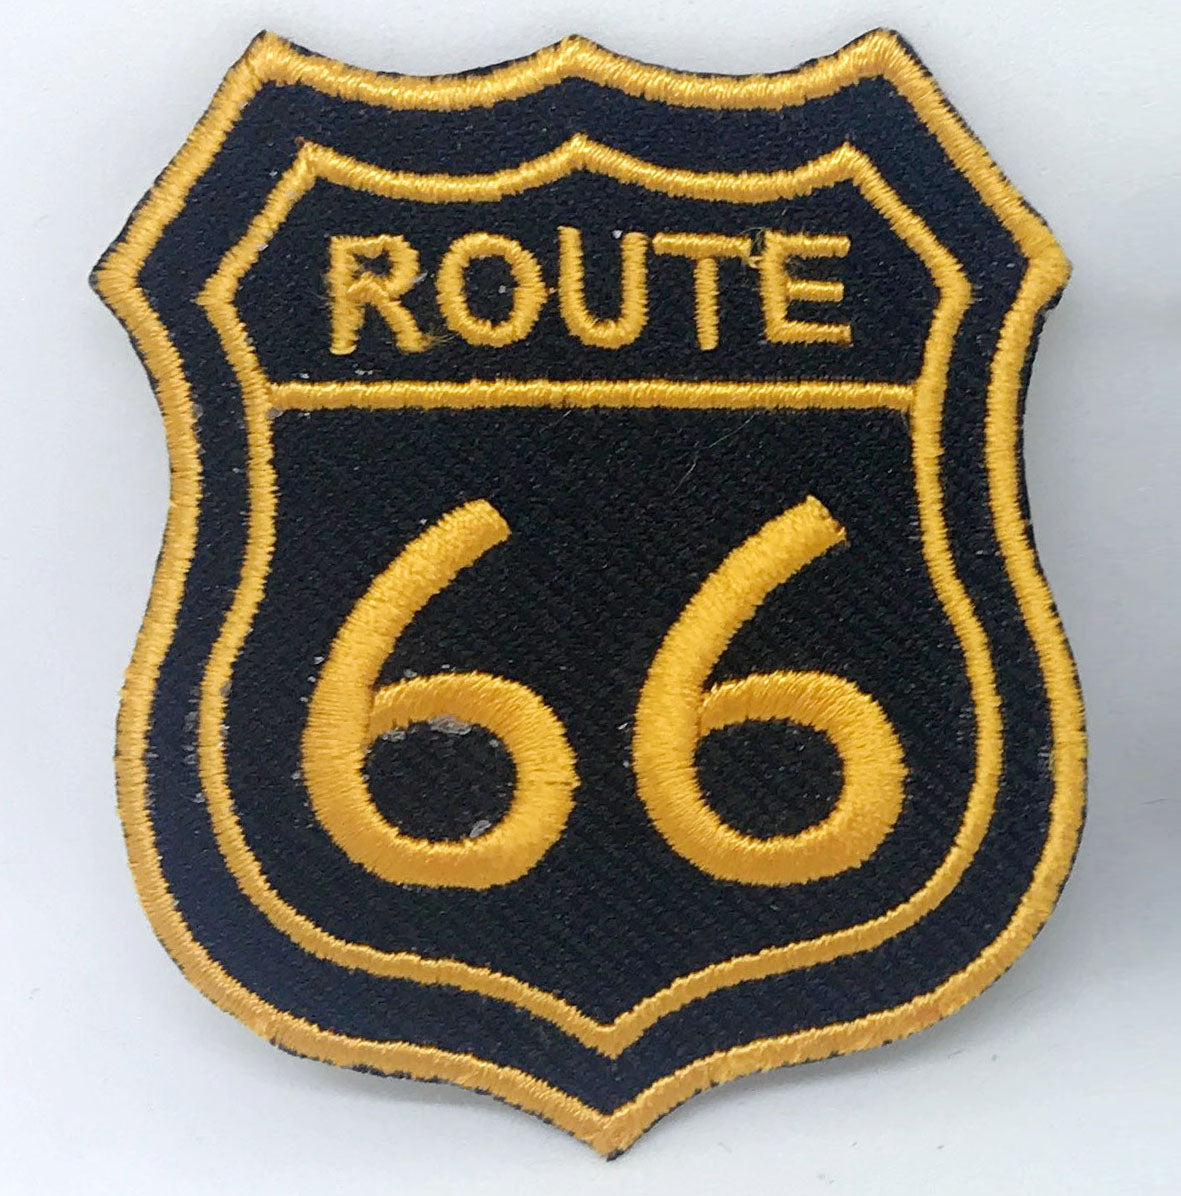 US Route 66 Car Motorcycle Biker Jacket Motif Iron on Embroidered Patch - Golden